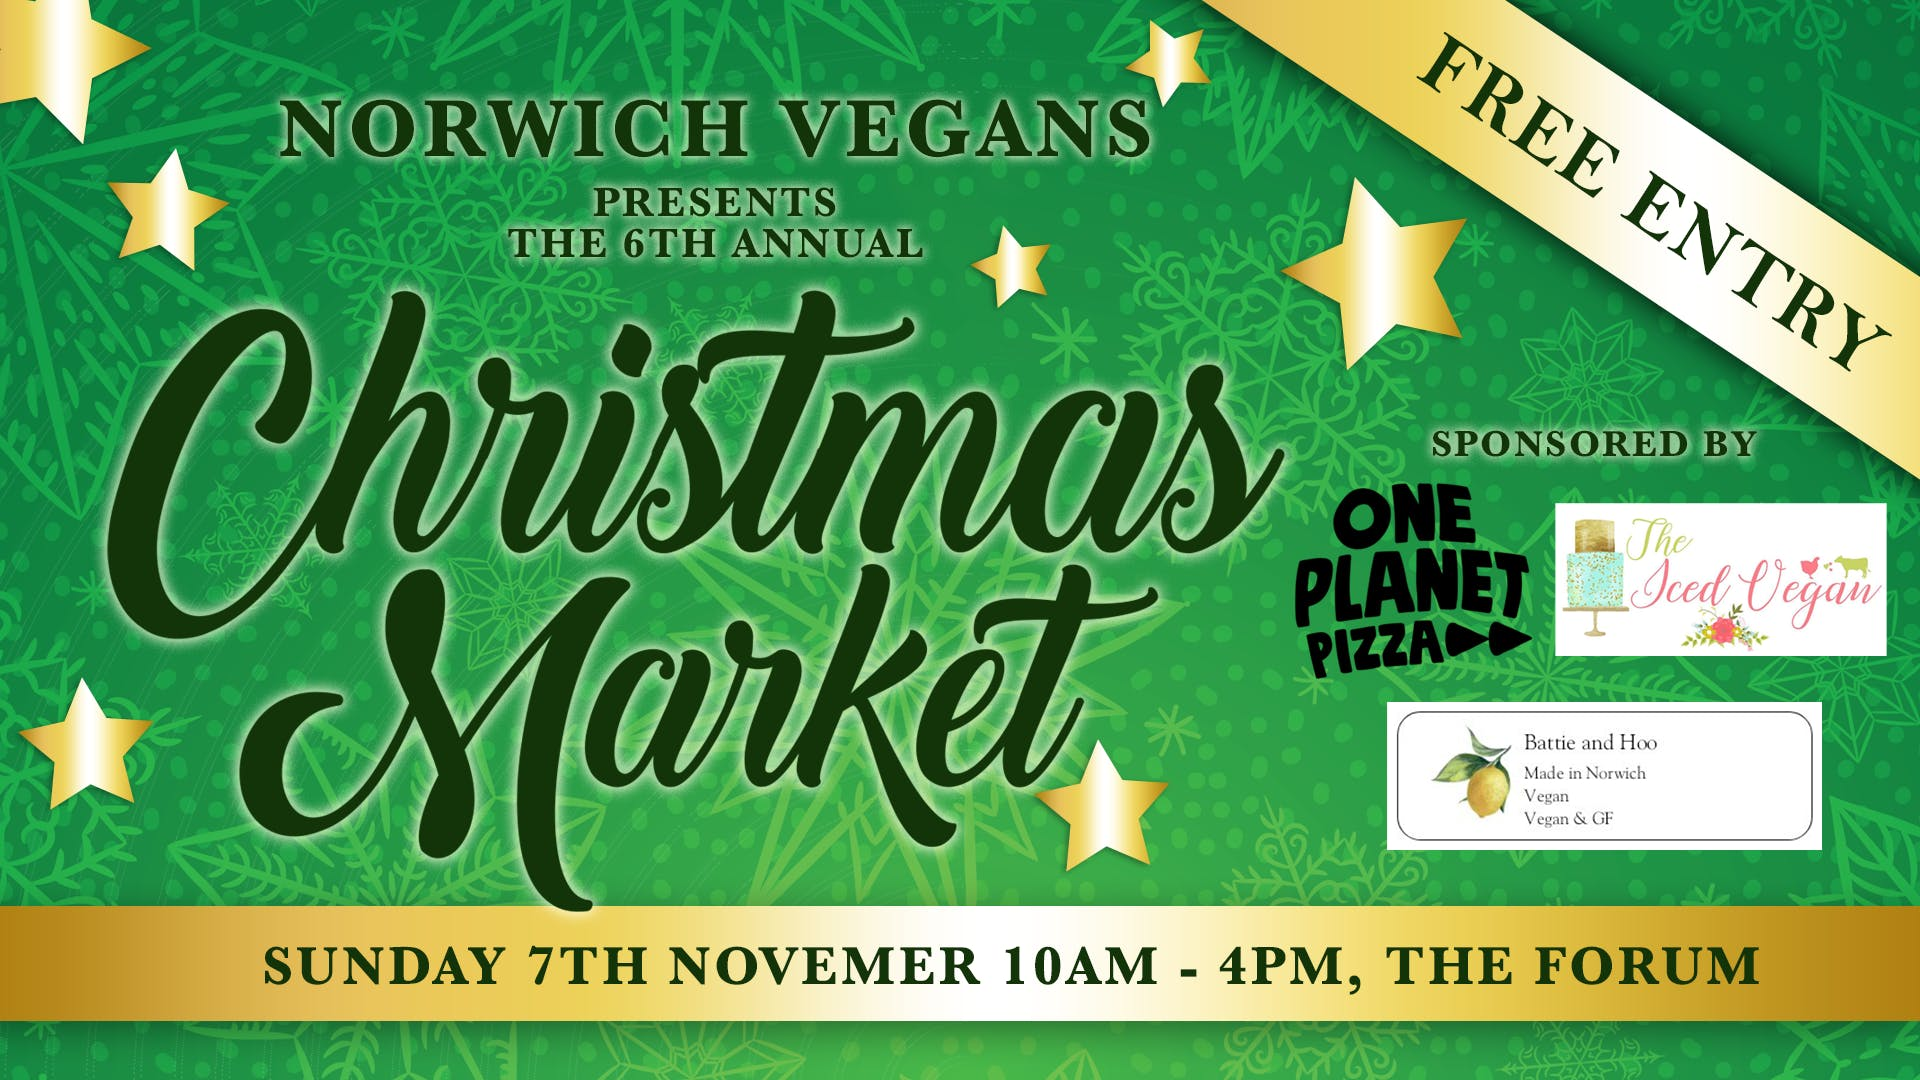 Advertising flyer for Norwich Vegans 6th annual Christmas market. Sponsored by The Iced Vegan, One Planet Pizza and Battie and Hoo.